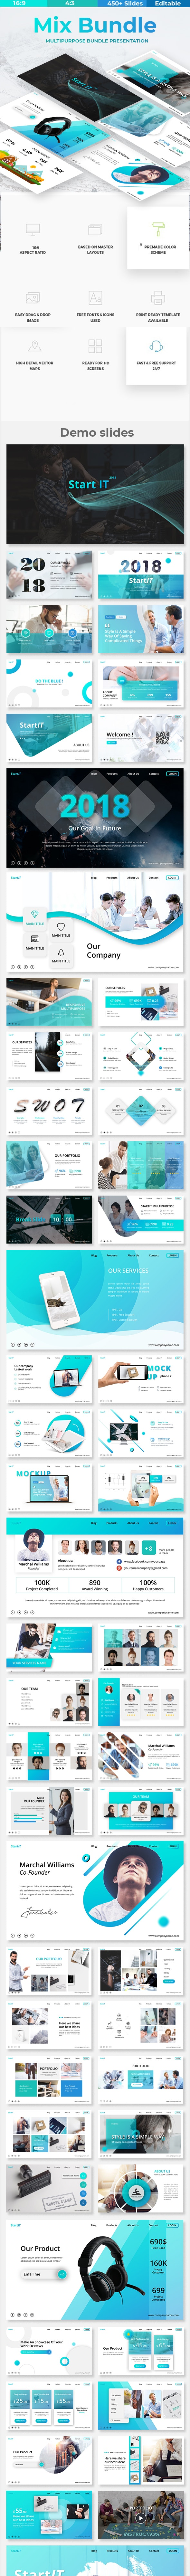 Mix Bundle 2 in 1 - Business Powerpoint Template - Business PowerPoint Templates